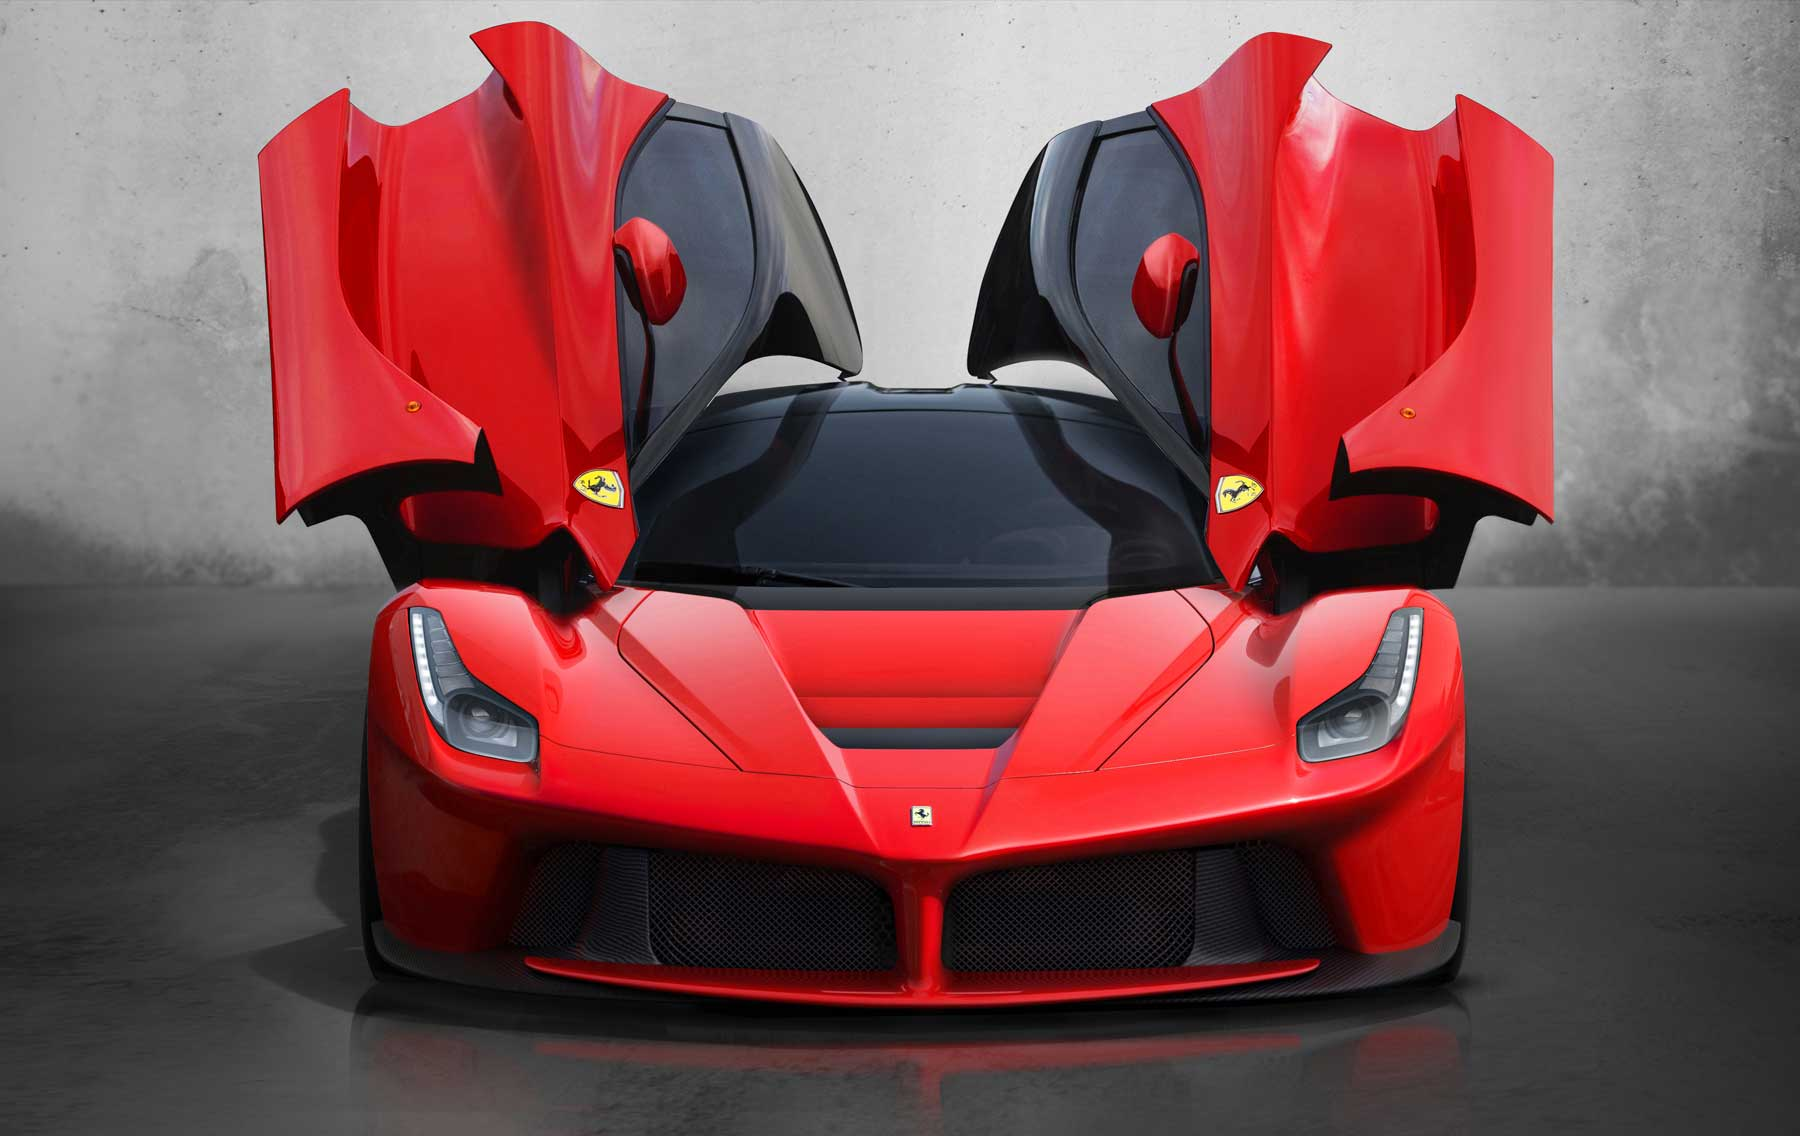 ferrari laferrari hy kers 2013 fiche technique et prix. Black Bedroom Furniture Sets. Home Design Ideas